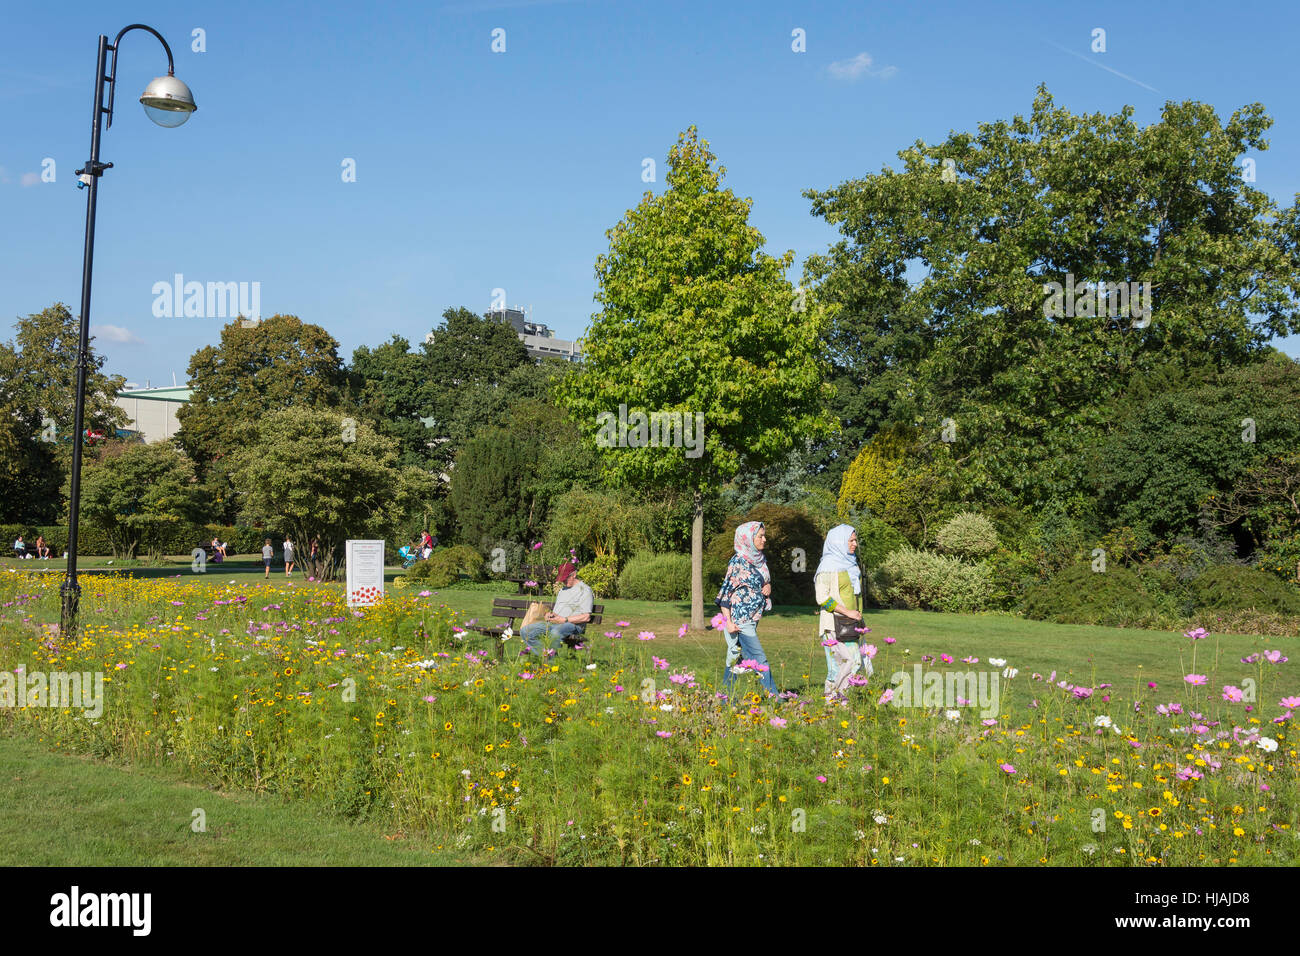 Memorial Gardens, Crawley, West Sussex, England, United Kingdom - Stock Image